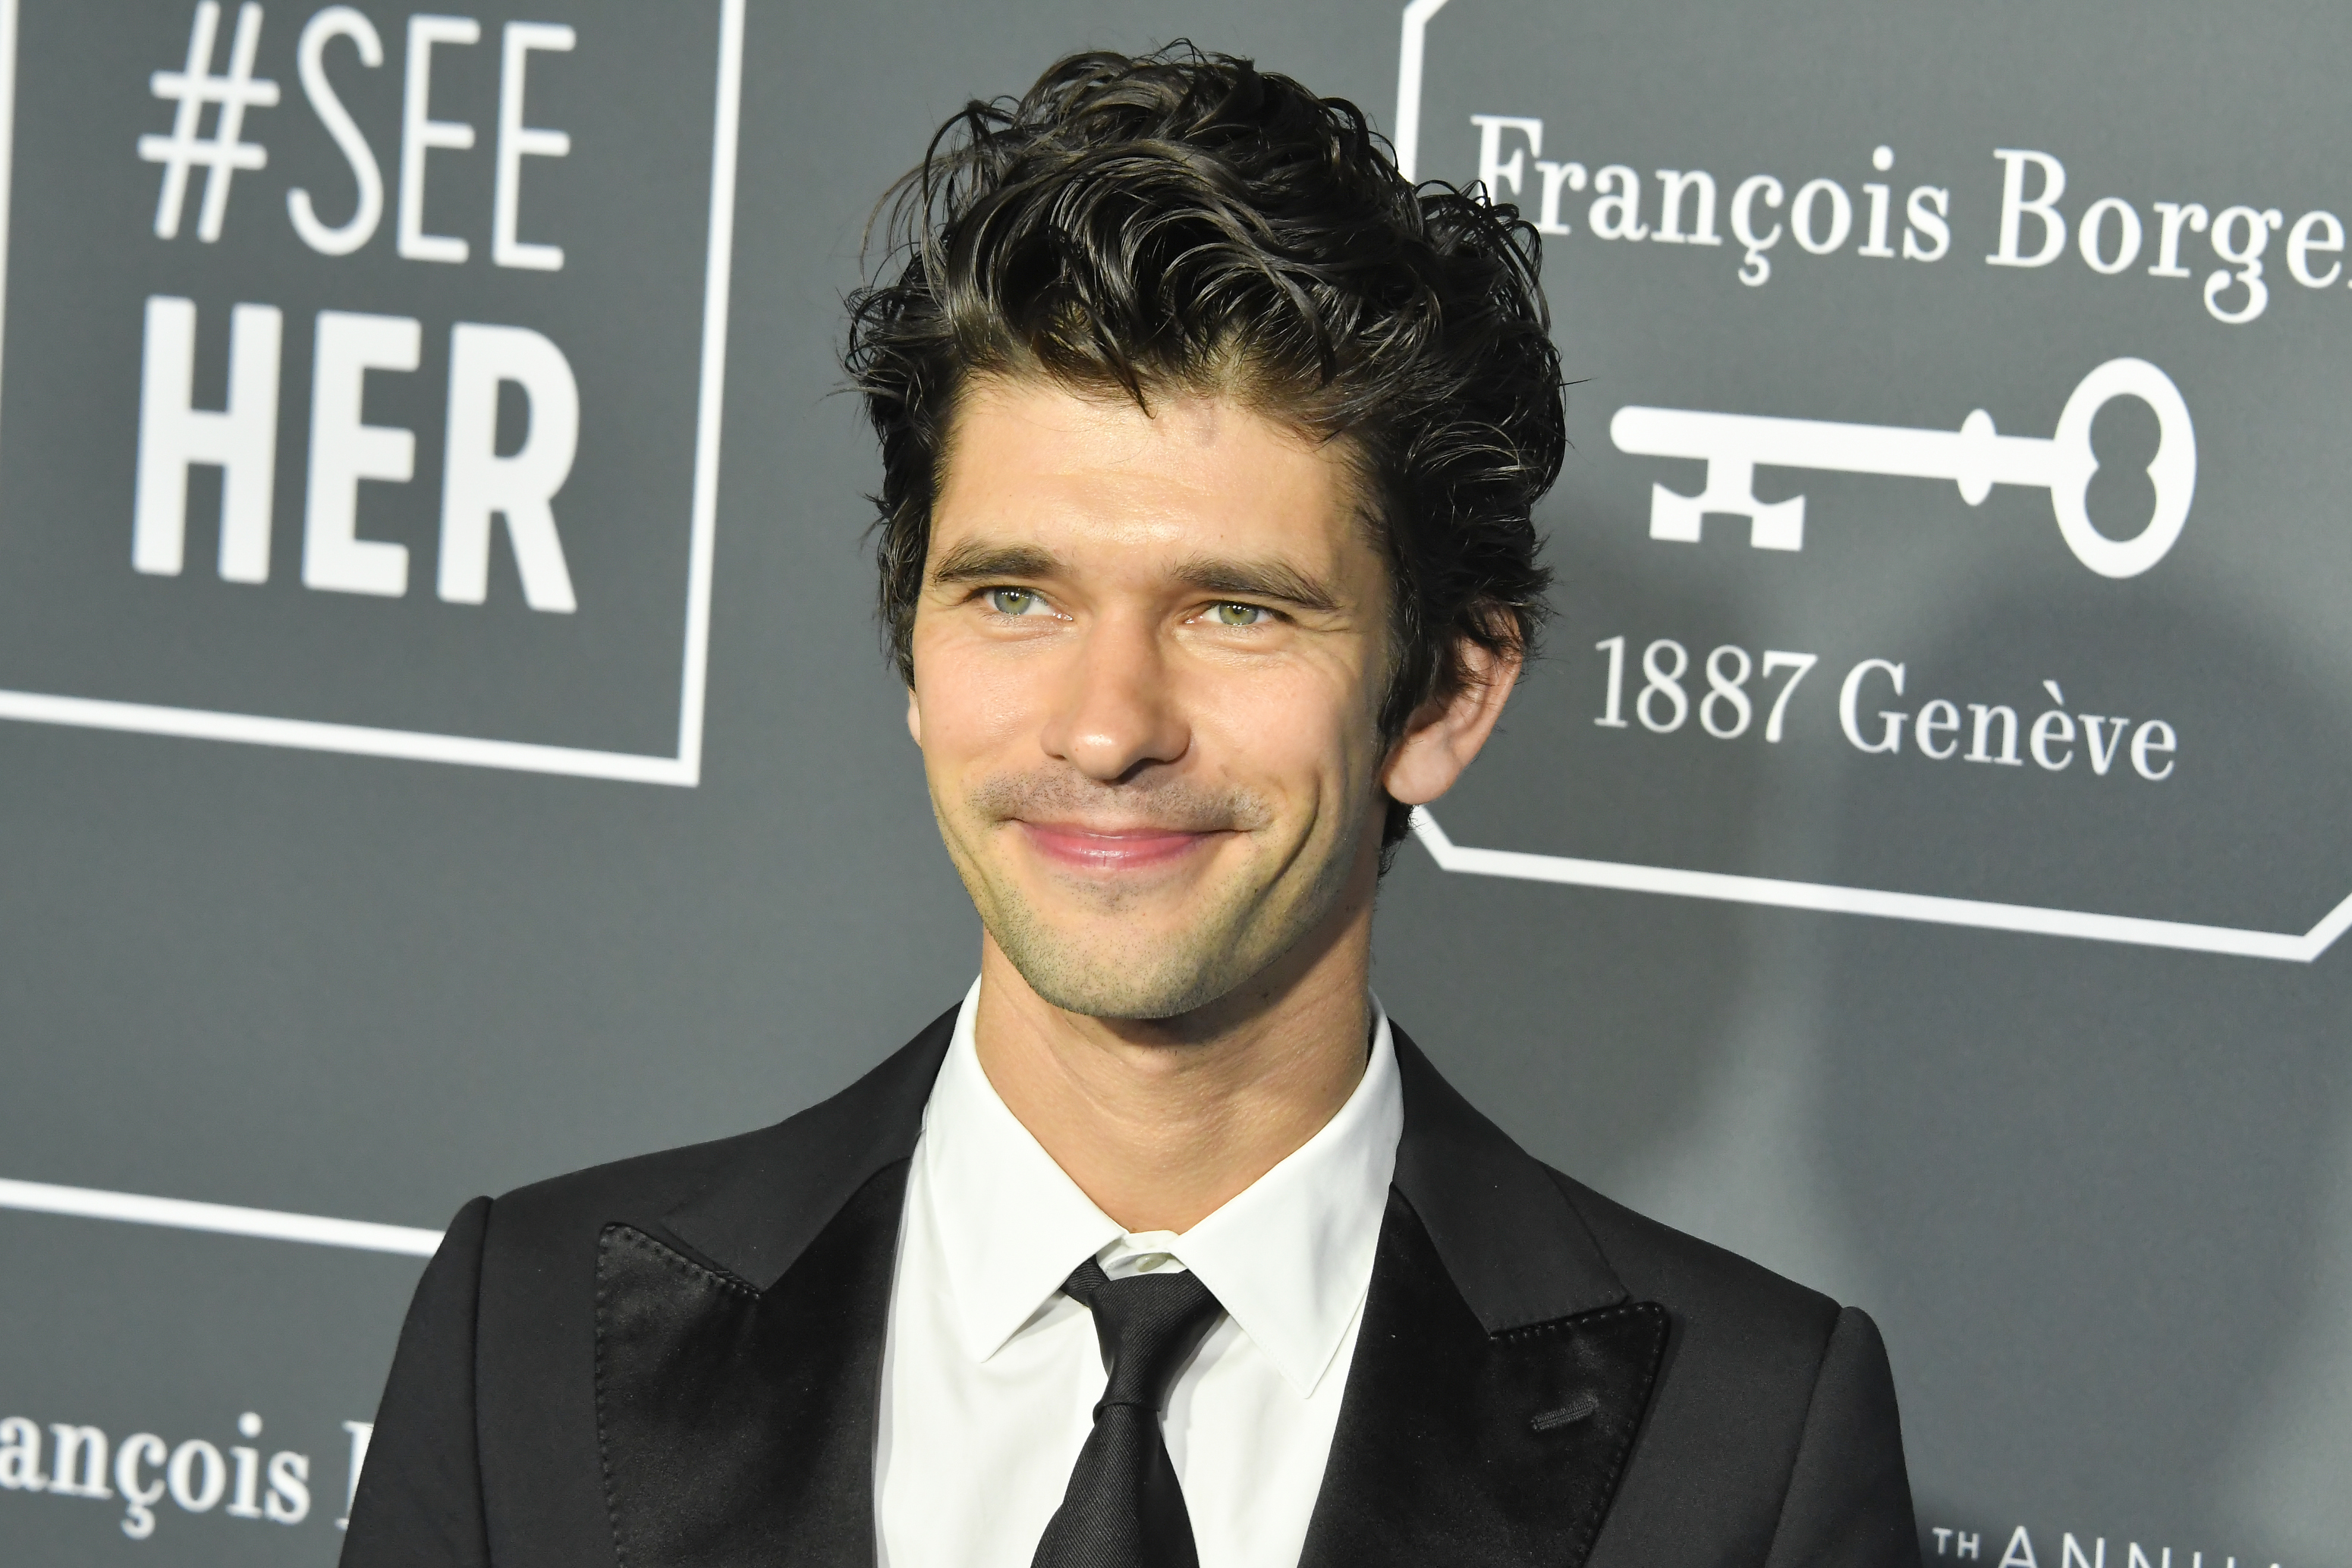 Ben Whishaw lend his voice to the character for the new TV series. Credit: PA Images